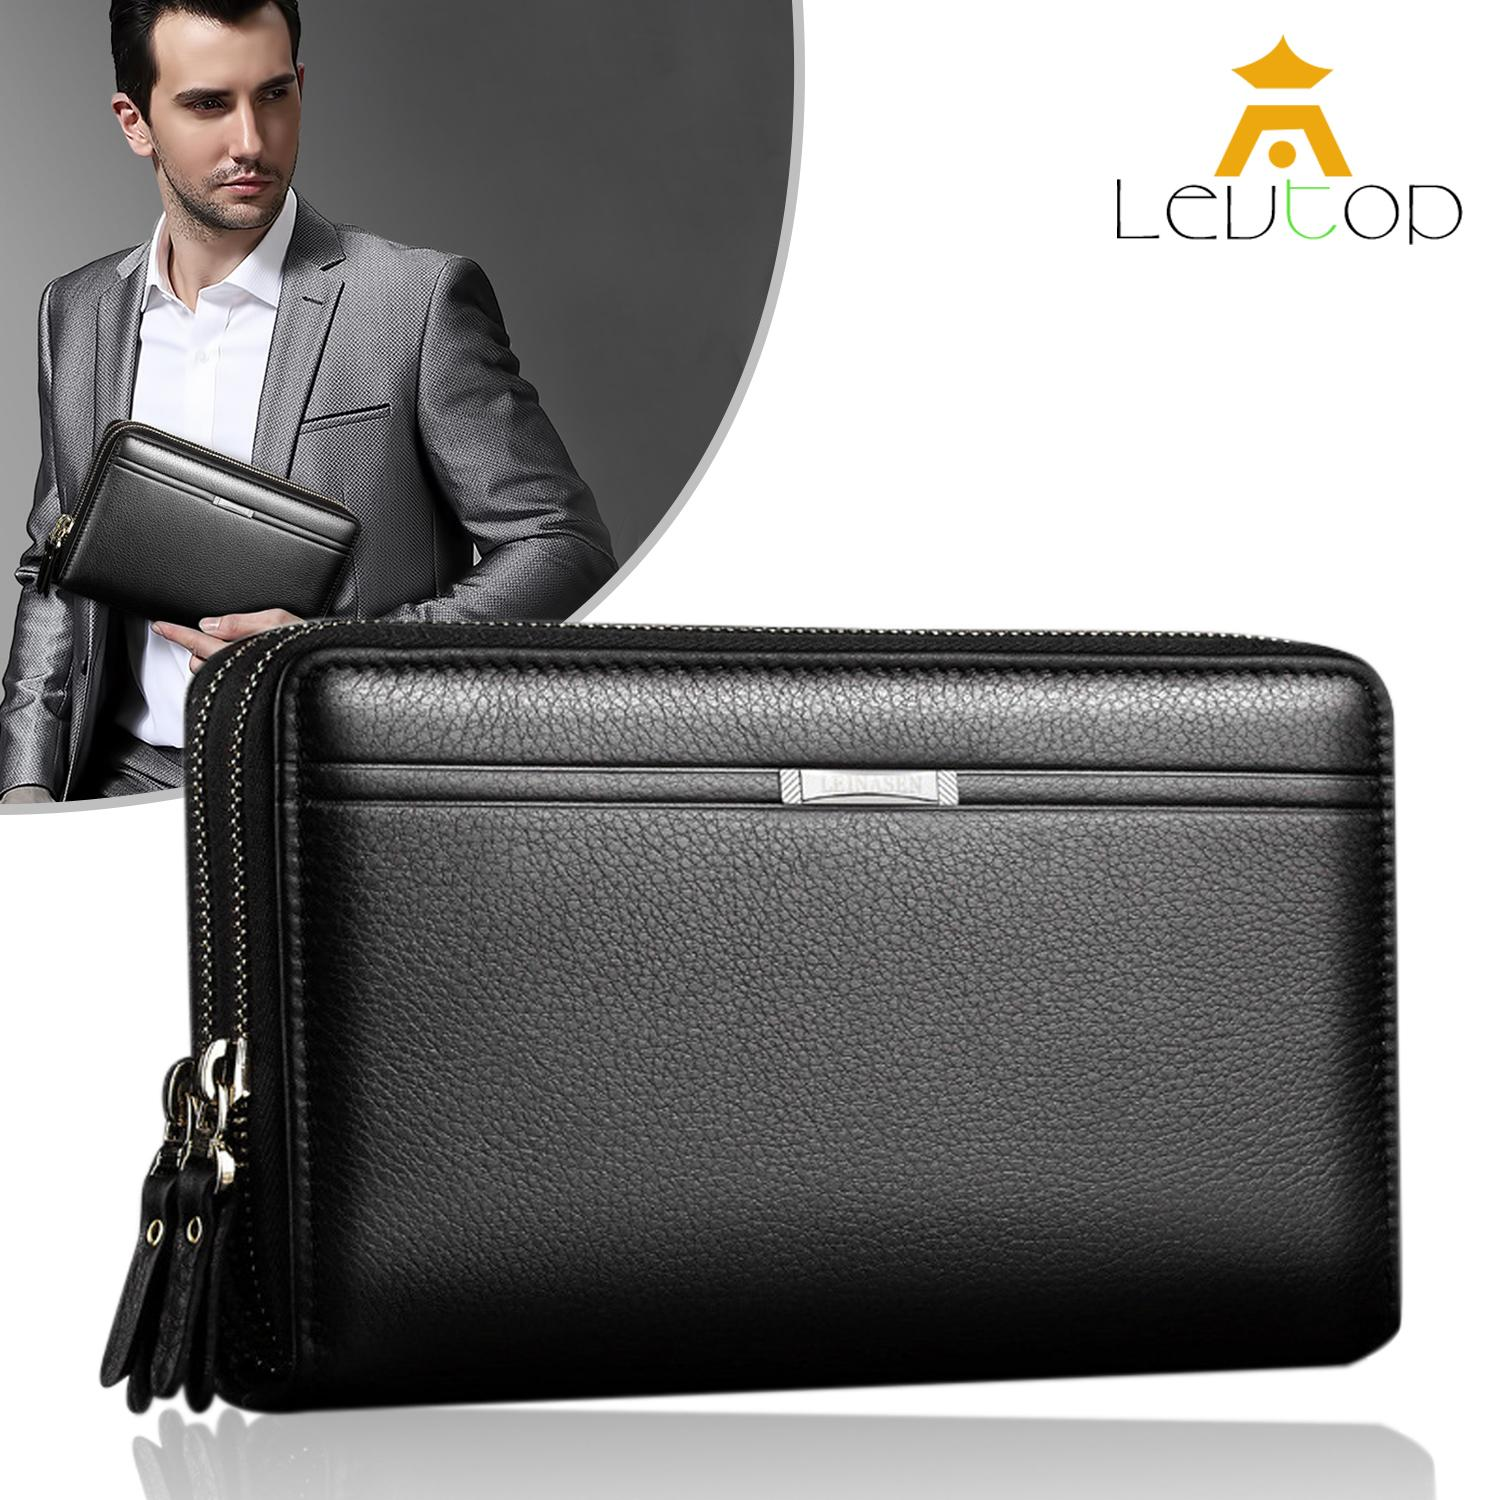 LEVTOP Men Fashion Wallet PU Leather Mens Hand Bag Business Long Clutch Purse Handbag for Phone Double Zipper Bag Male Coin Money Bags Card Holder Christmas Gift